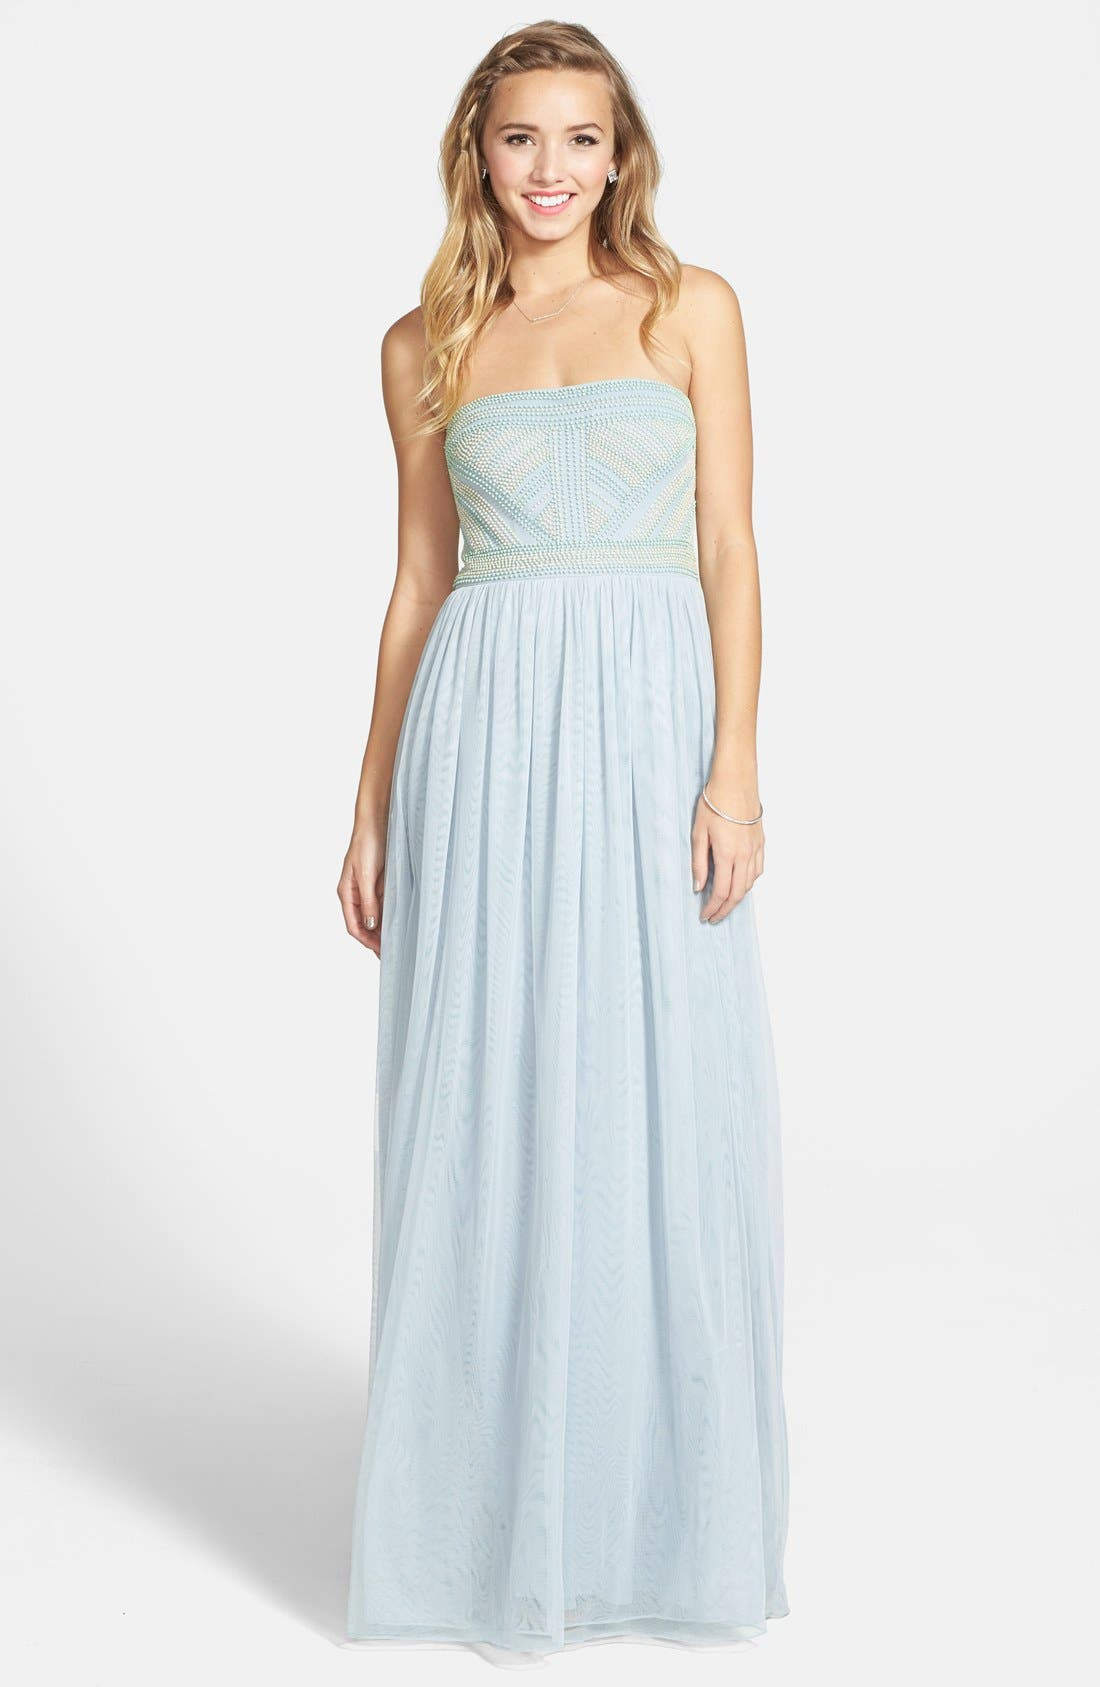 Main Image - Adrianna Papell Beaded Chiffon Strapless Gown